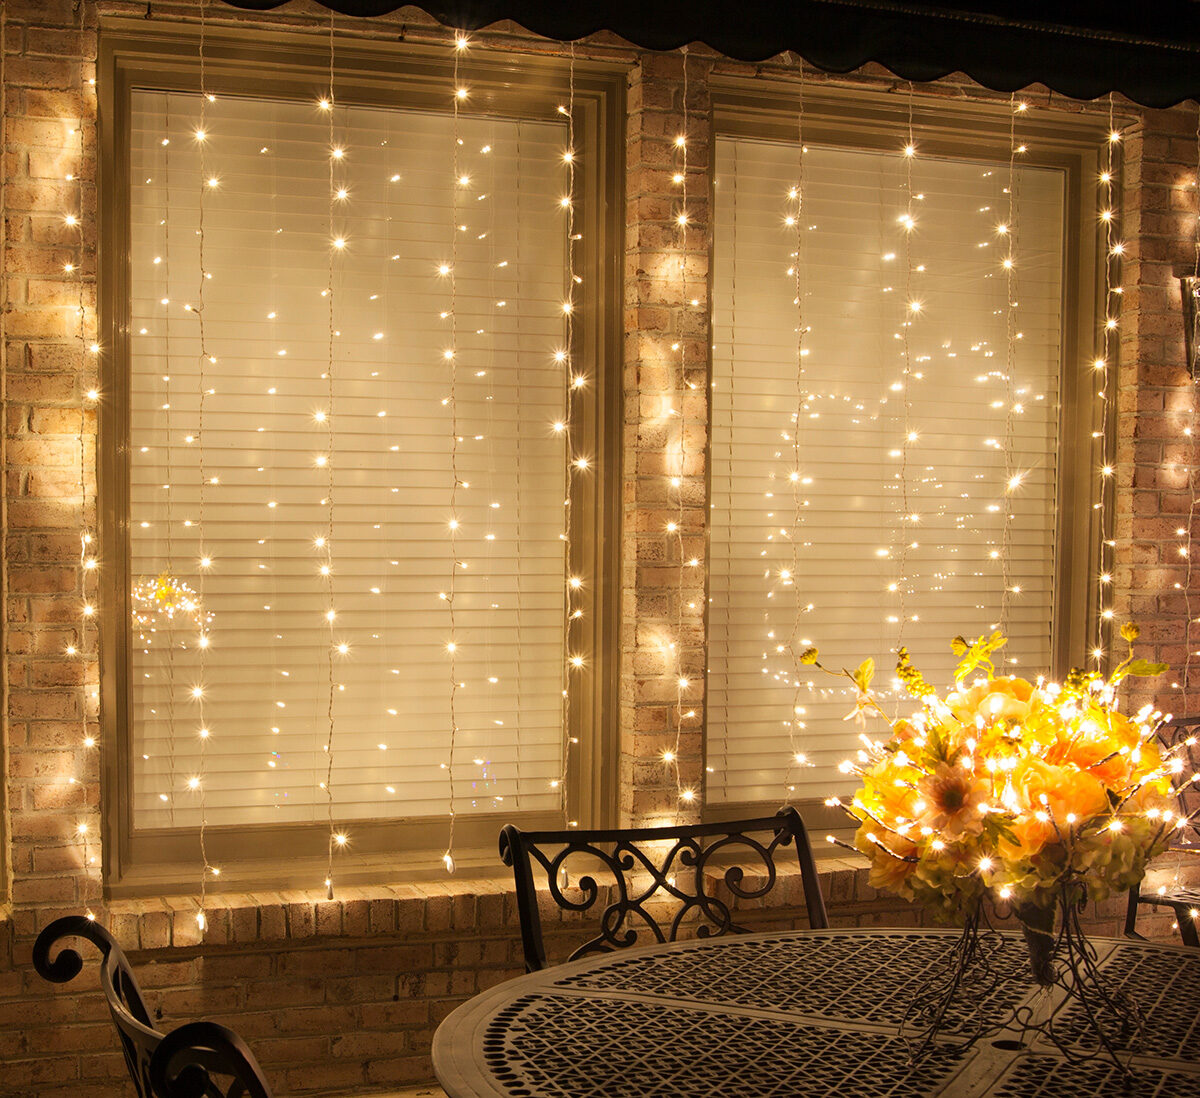 DIY Curtain Lights using LED Mini String Lights